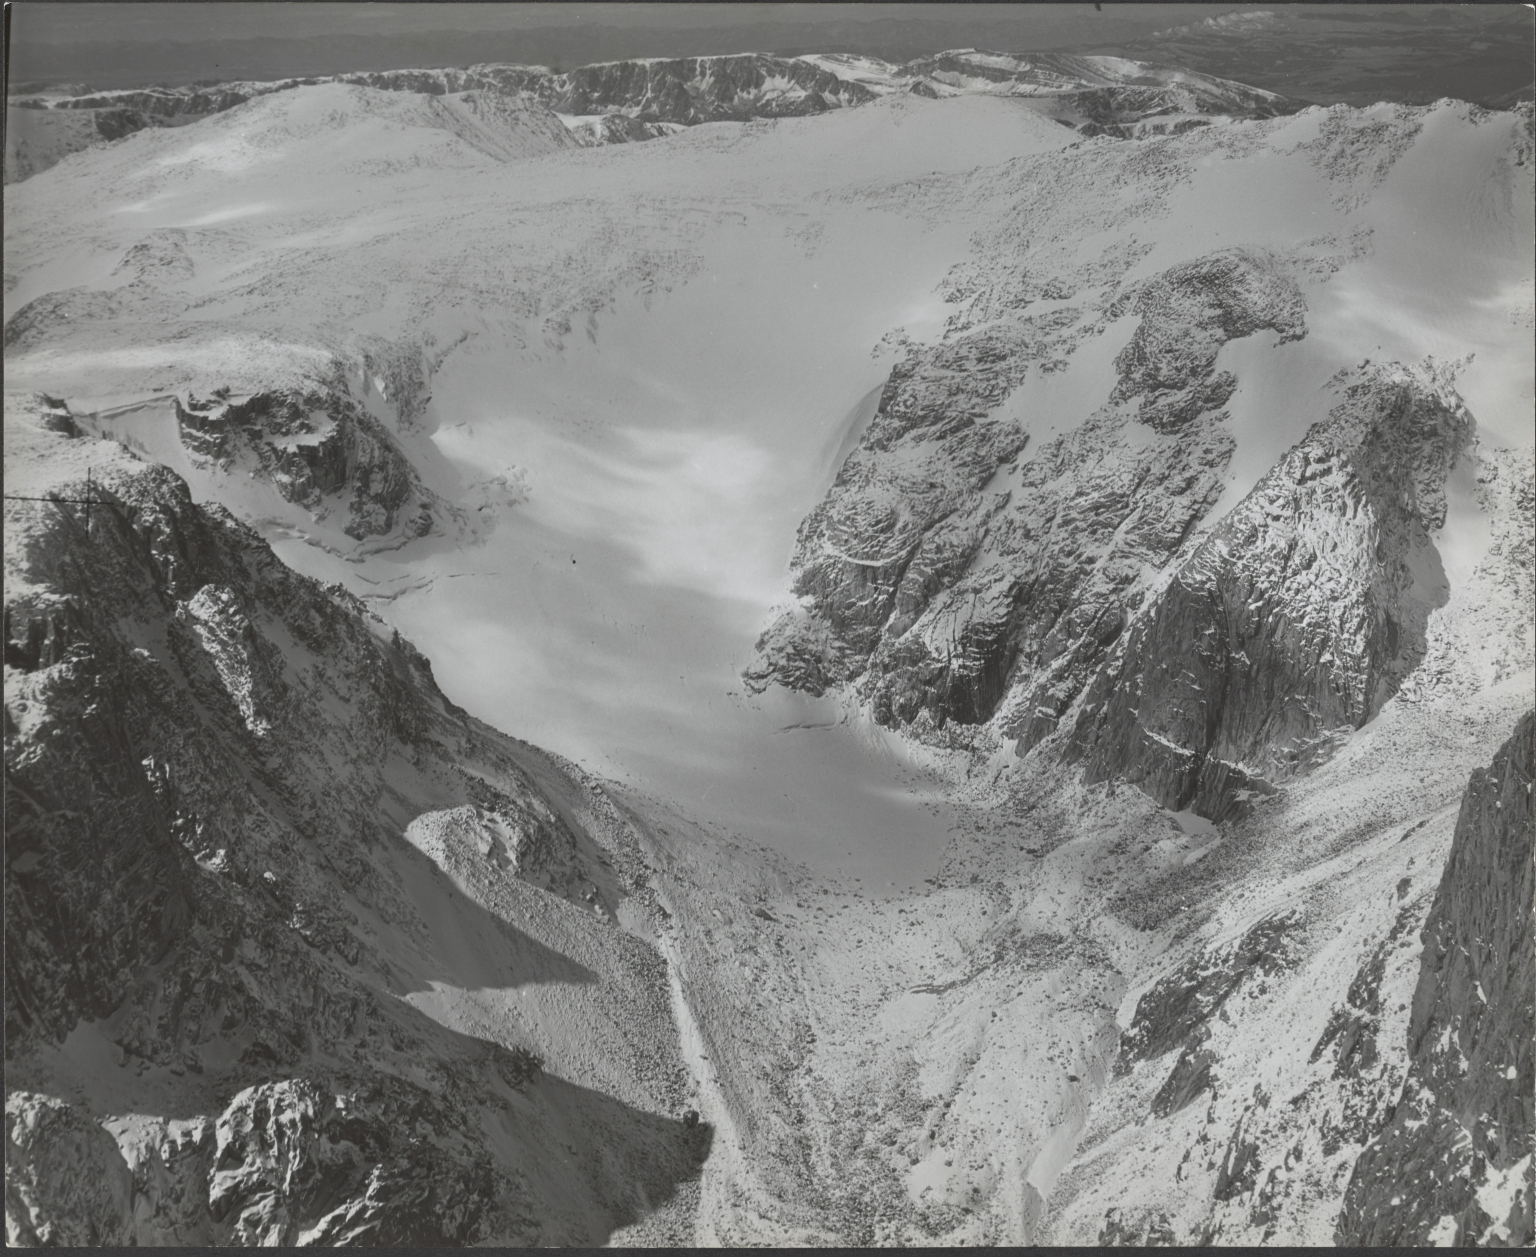 Glacier on Mount Downs, aerial photograph roll no. 22 exposure no. 68, Wyoming